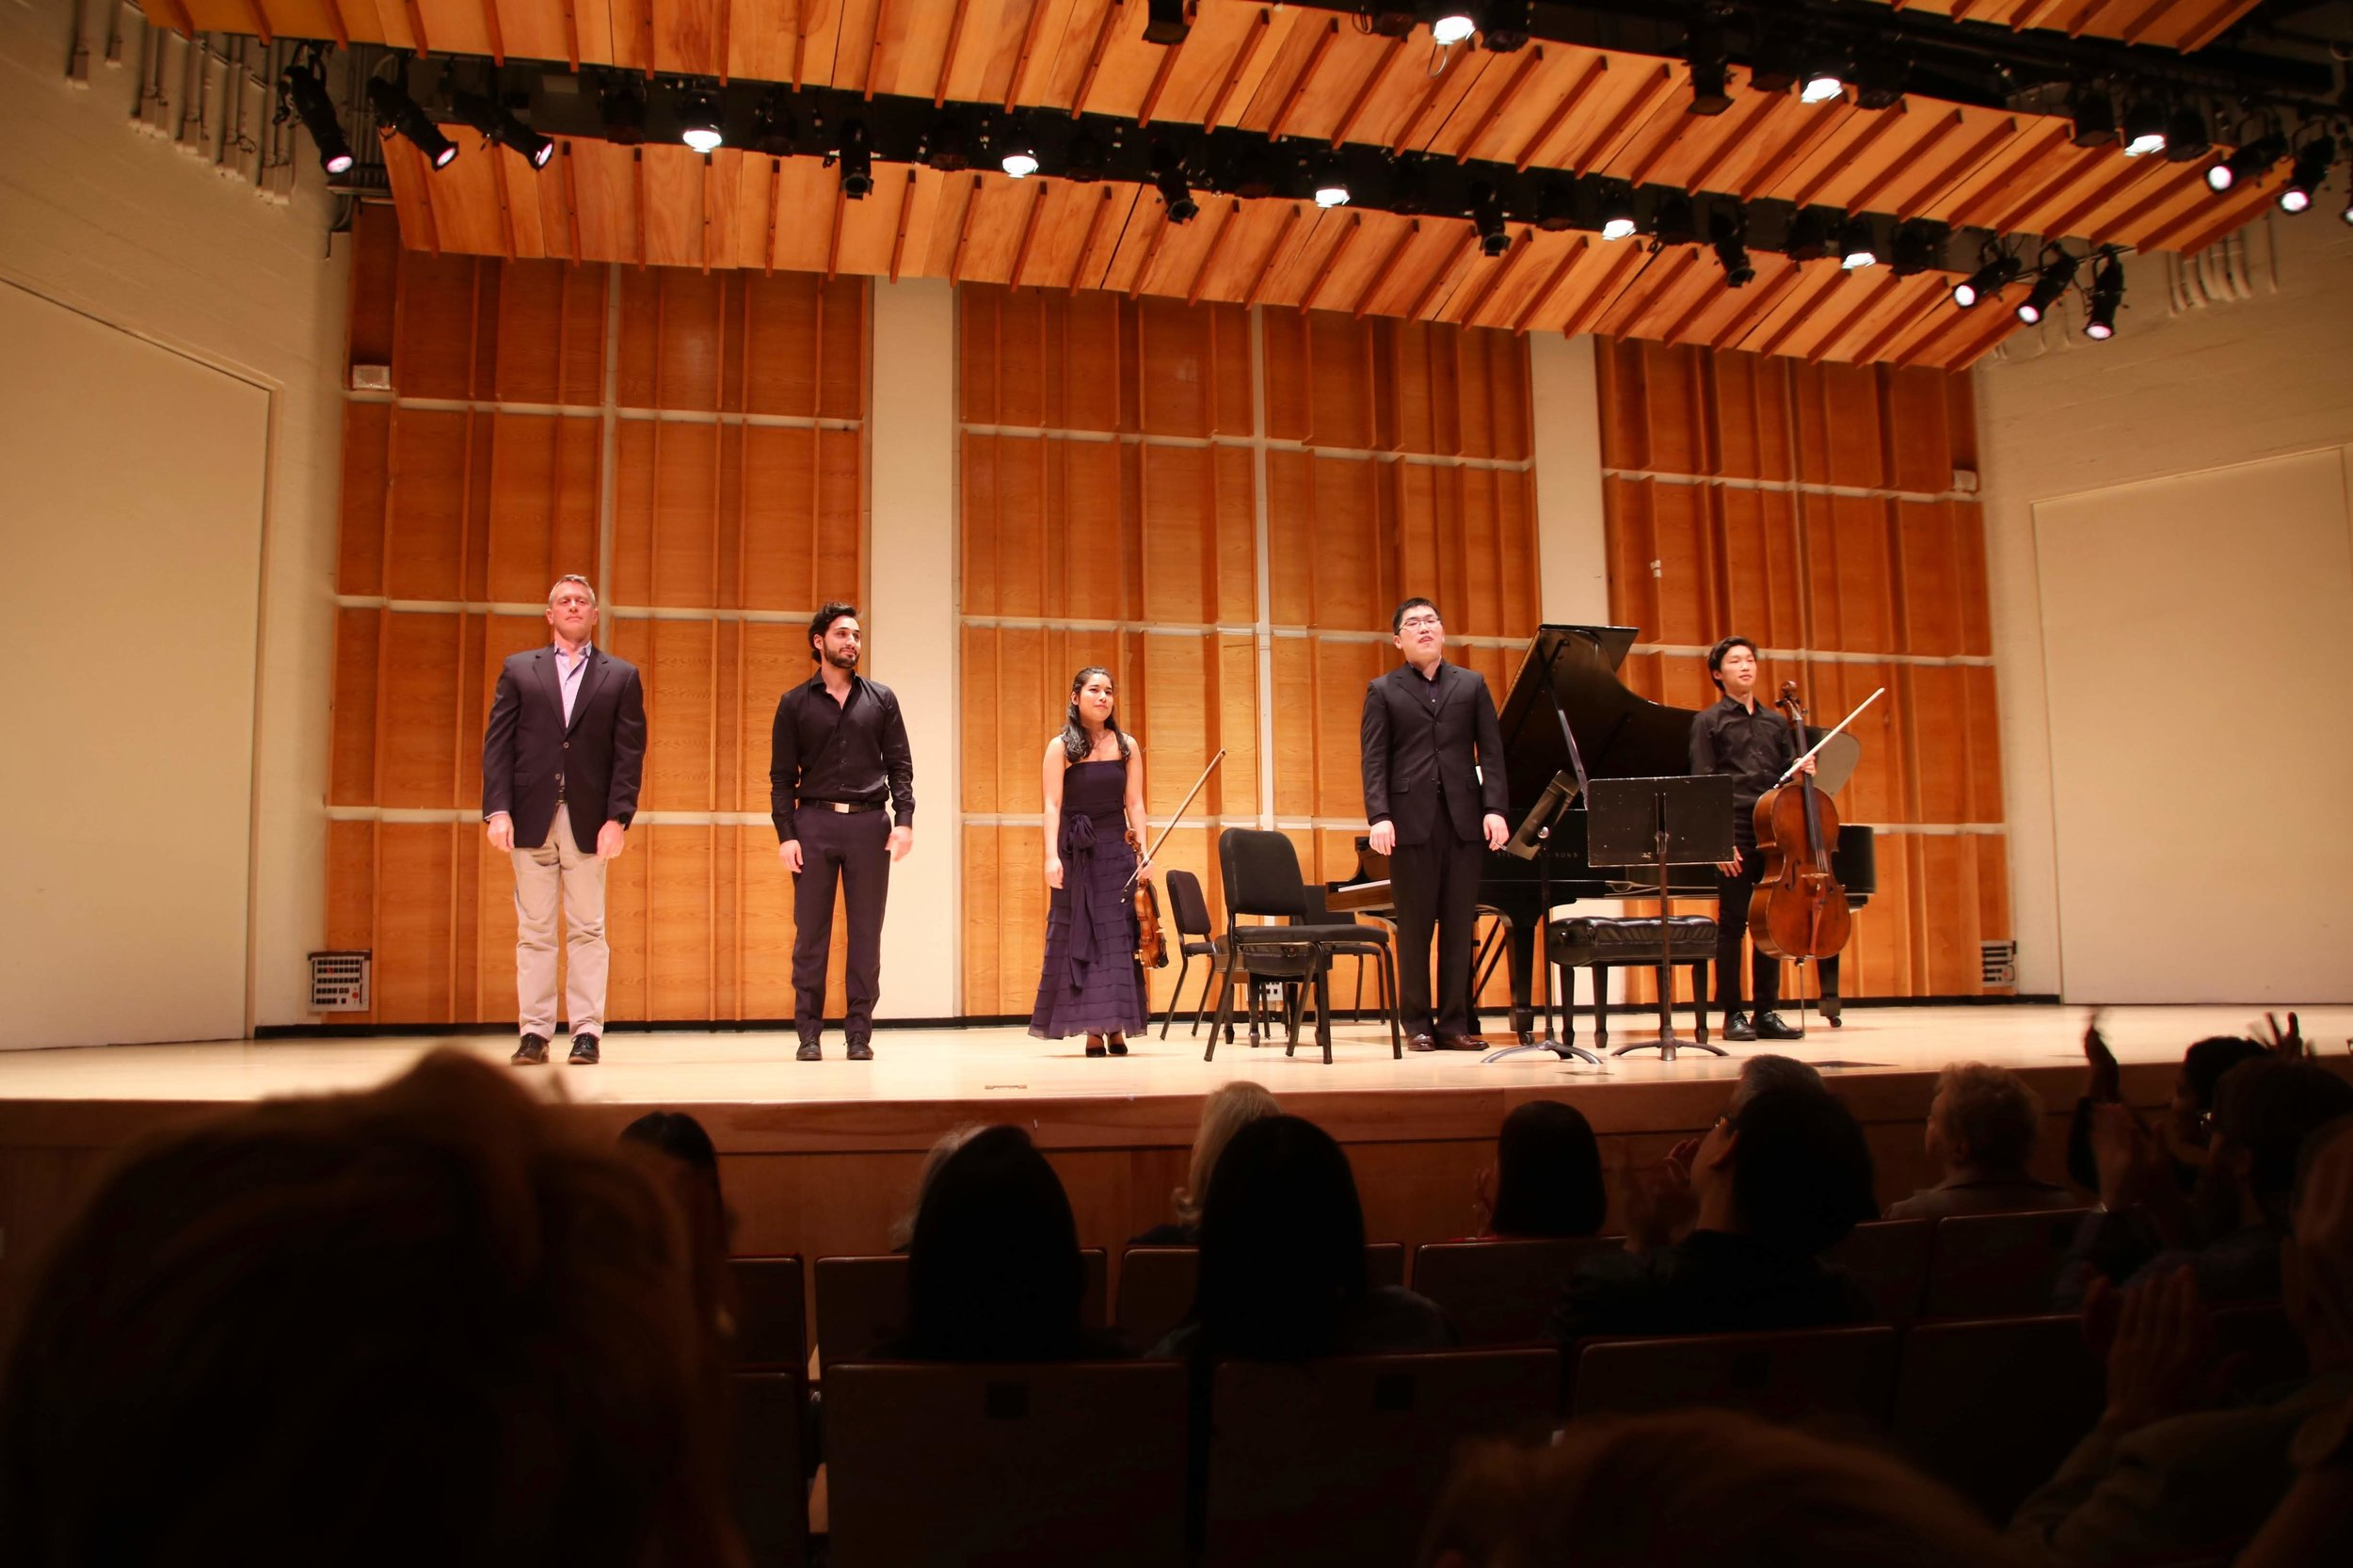 """4 """"Kaufman Family Seats"""" tickets to our Opening Concert in Merkin Hall at Kaufman Music Center  Value of $250 // Starting Bid: $150  October 12, 2019 7:30 pm"""